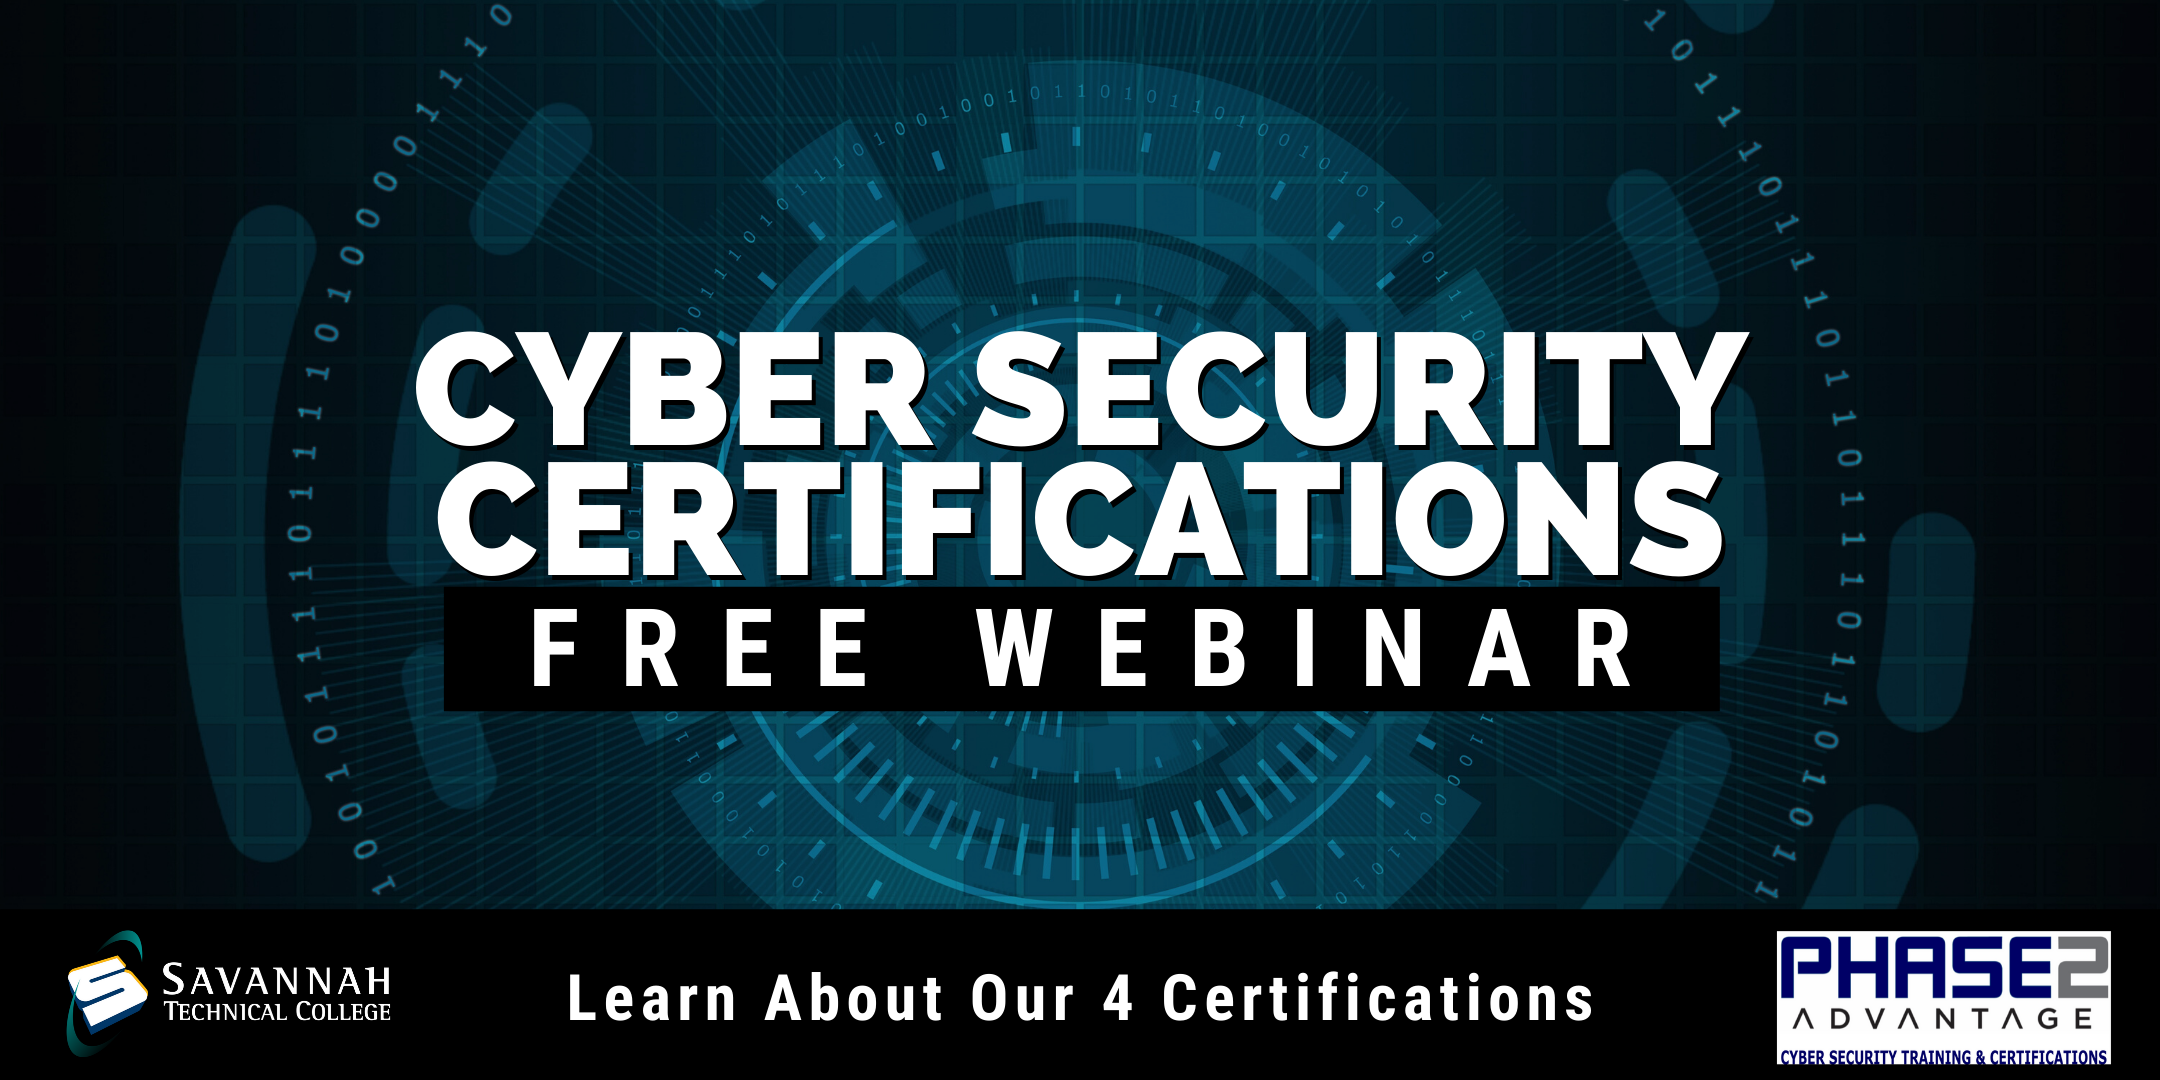 Cyber Security Certification Course Eventbrite Image